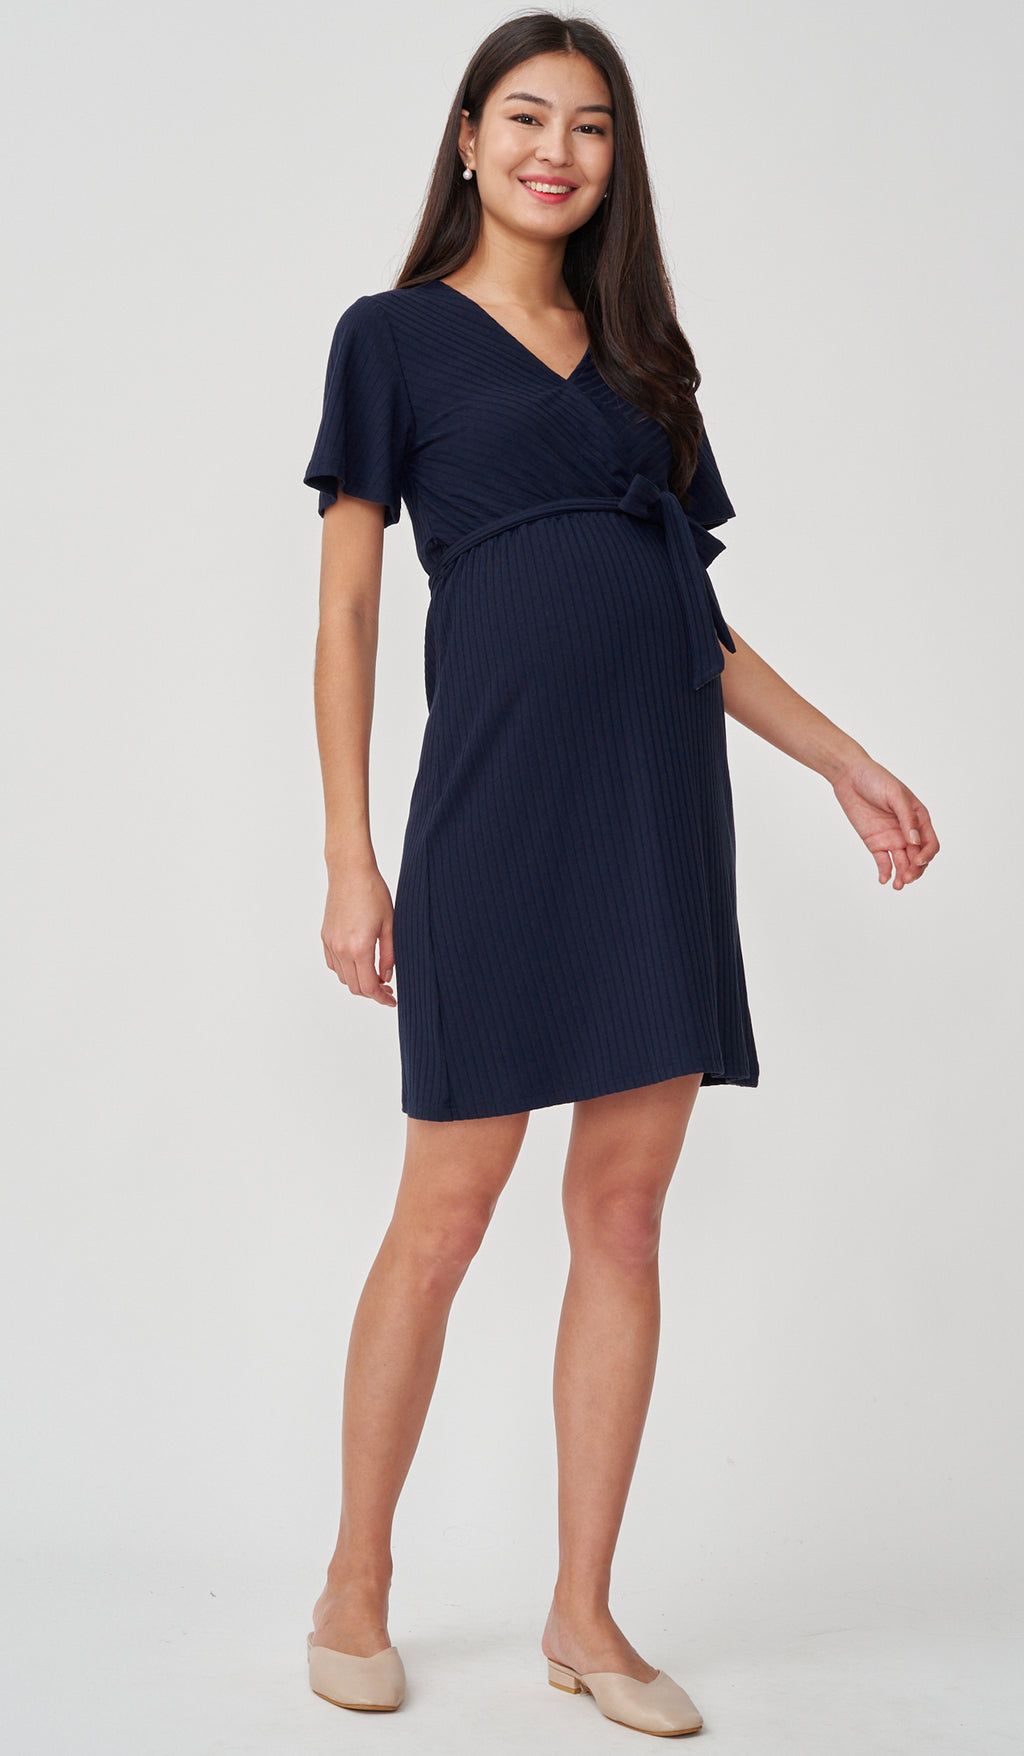 NYLA FAUX WRAP RIBBED NURSING DRESS NAVY